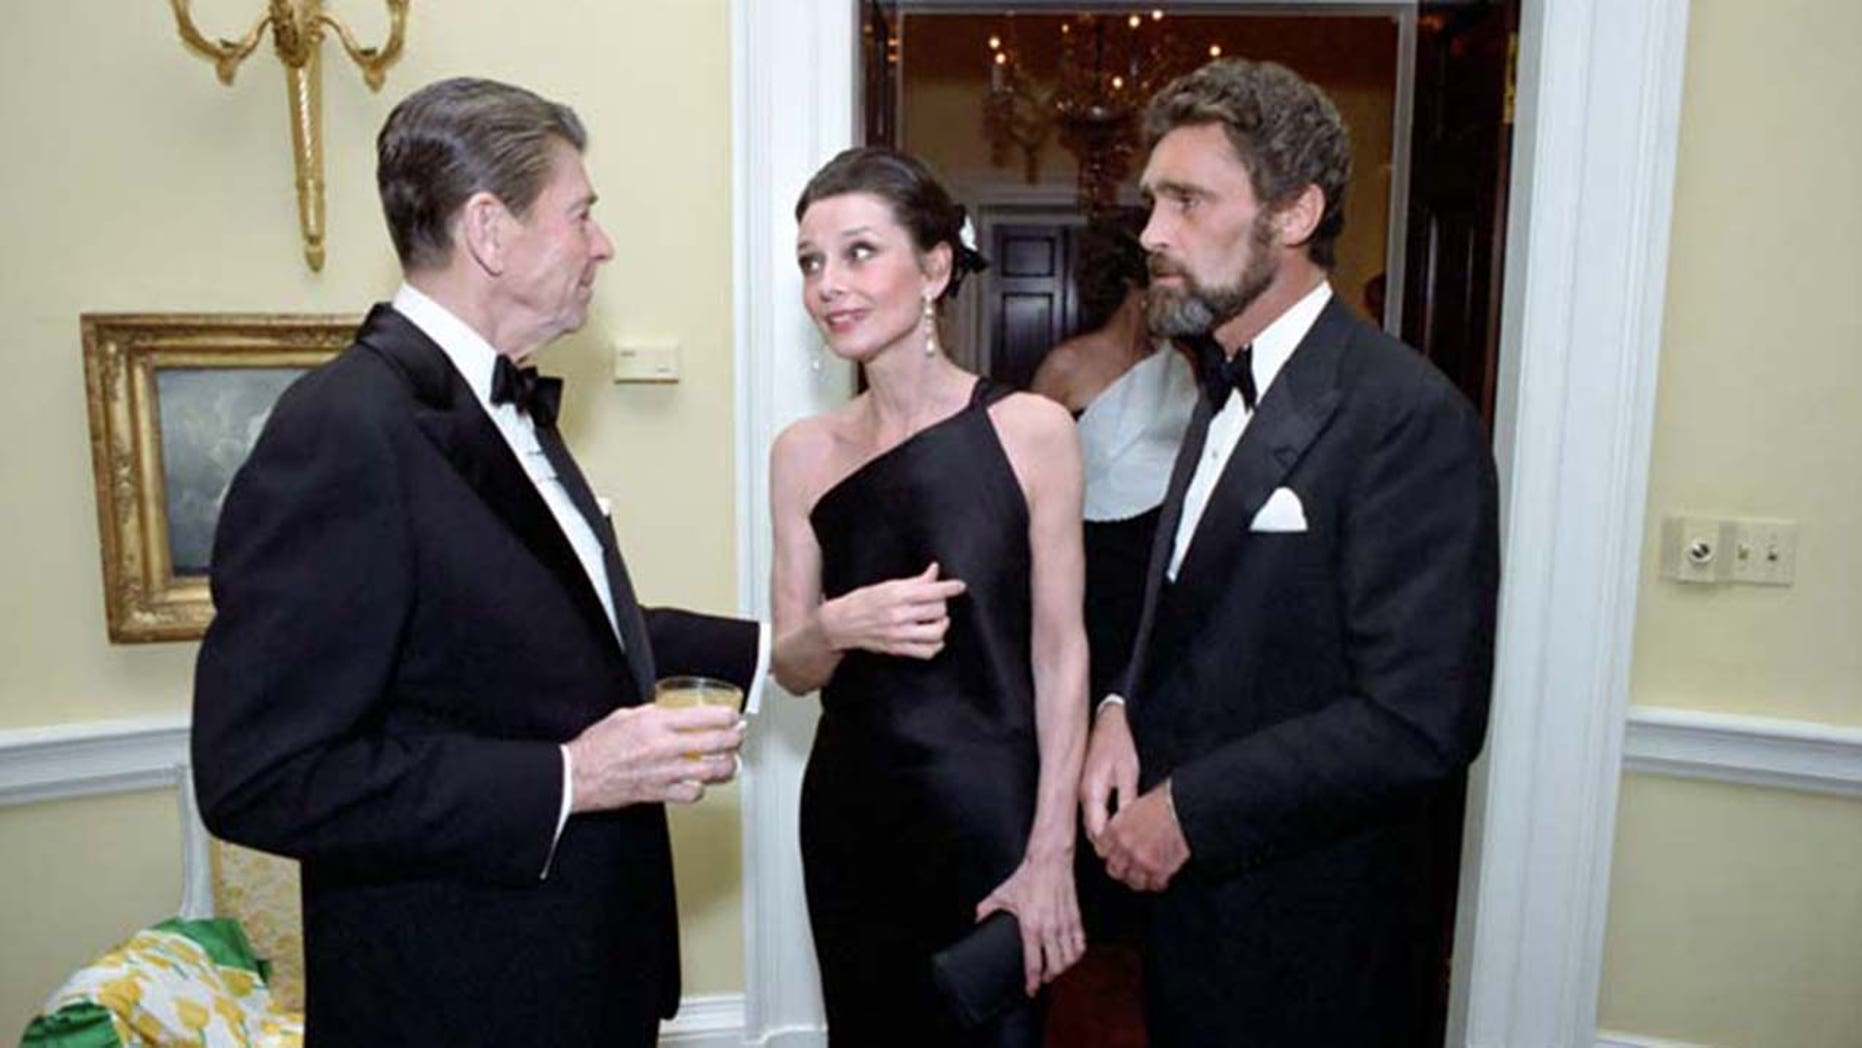 From left to right: President Ronald Reagan speaking with Audrey Hepburn and Robert Wolders.